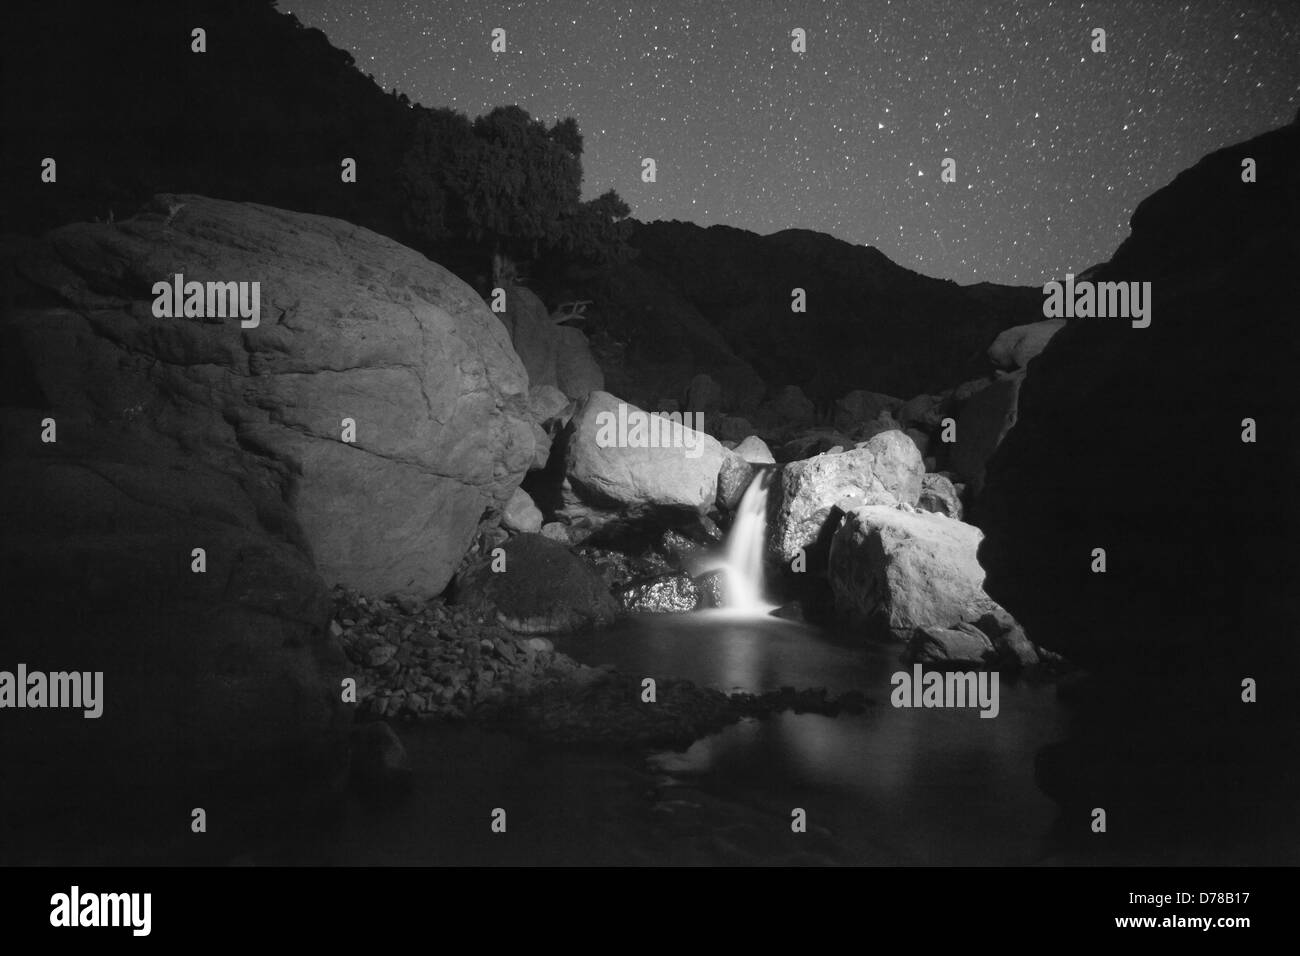 Moonlit waterfall in the Atlas mountains - Stock Image